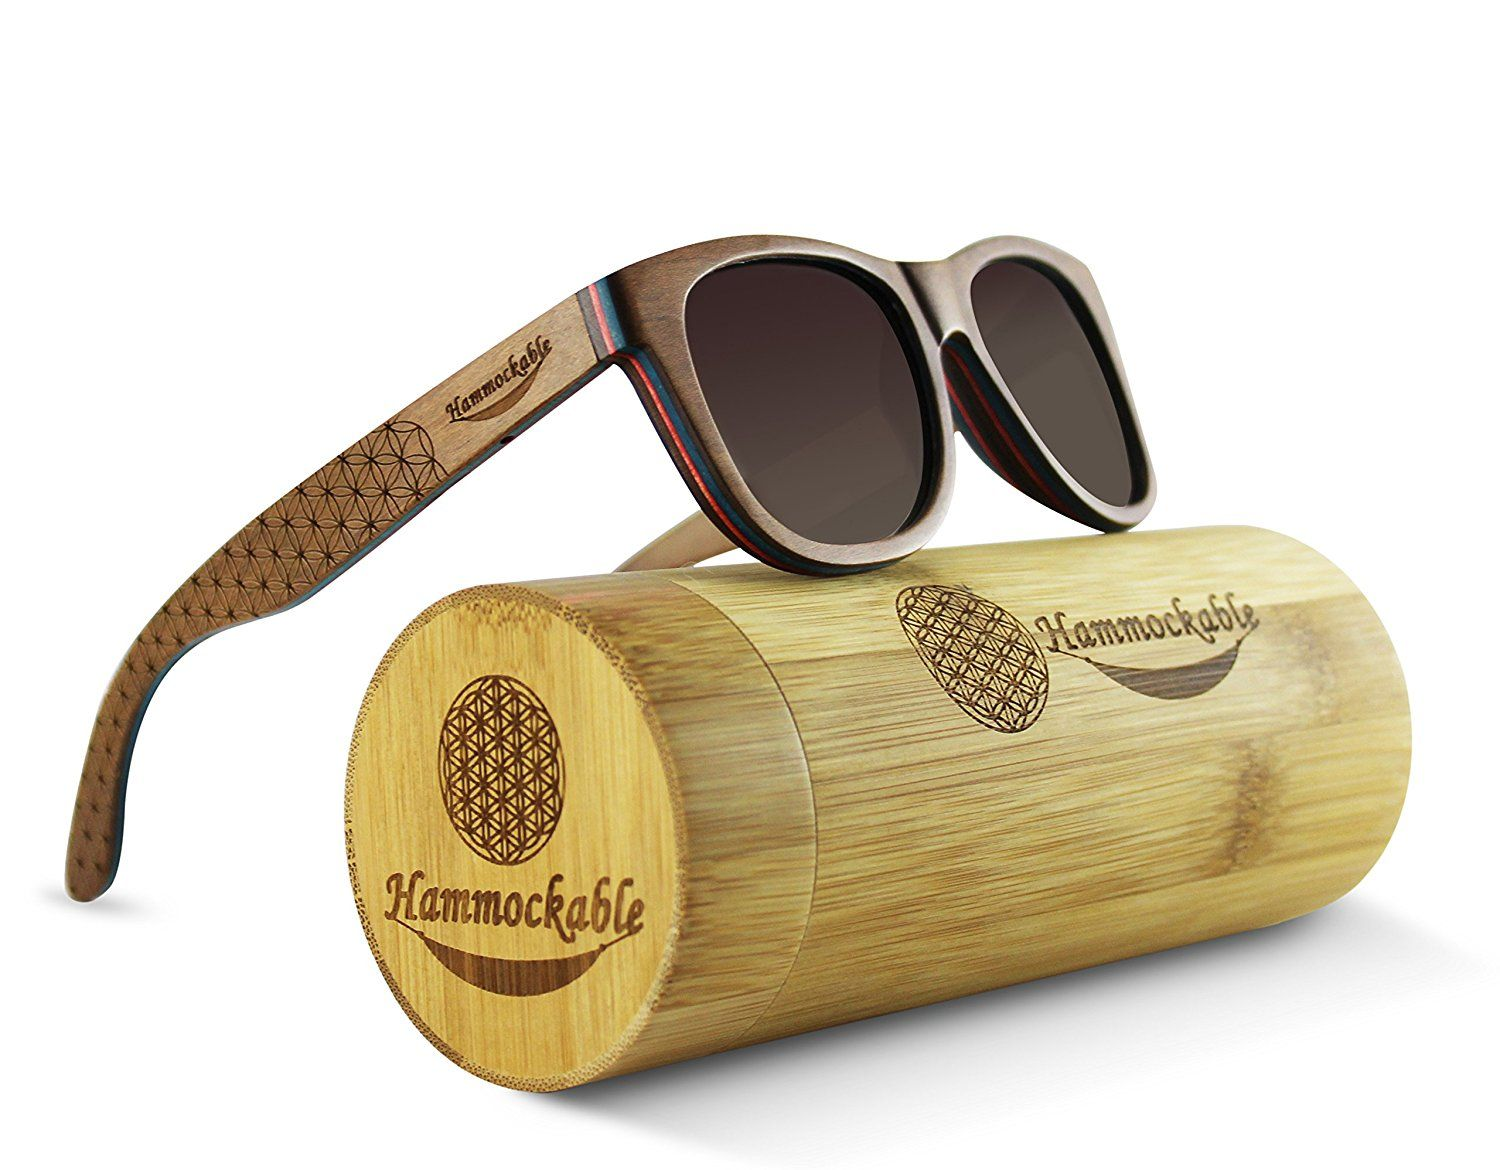 a231bf7a37 Maple Wood Sunglasses - 100% Polarized Lenses in a Handmade Wooden Wayfarer  that Floats! woodensunglassesmens  woodensunglassesholder   woodensunglasseswomen